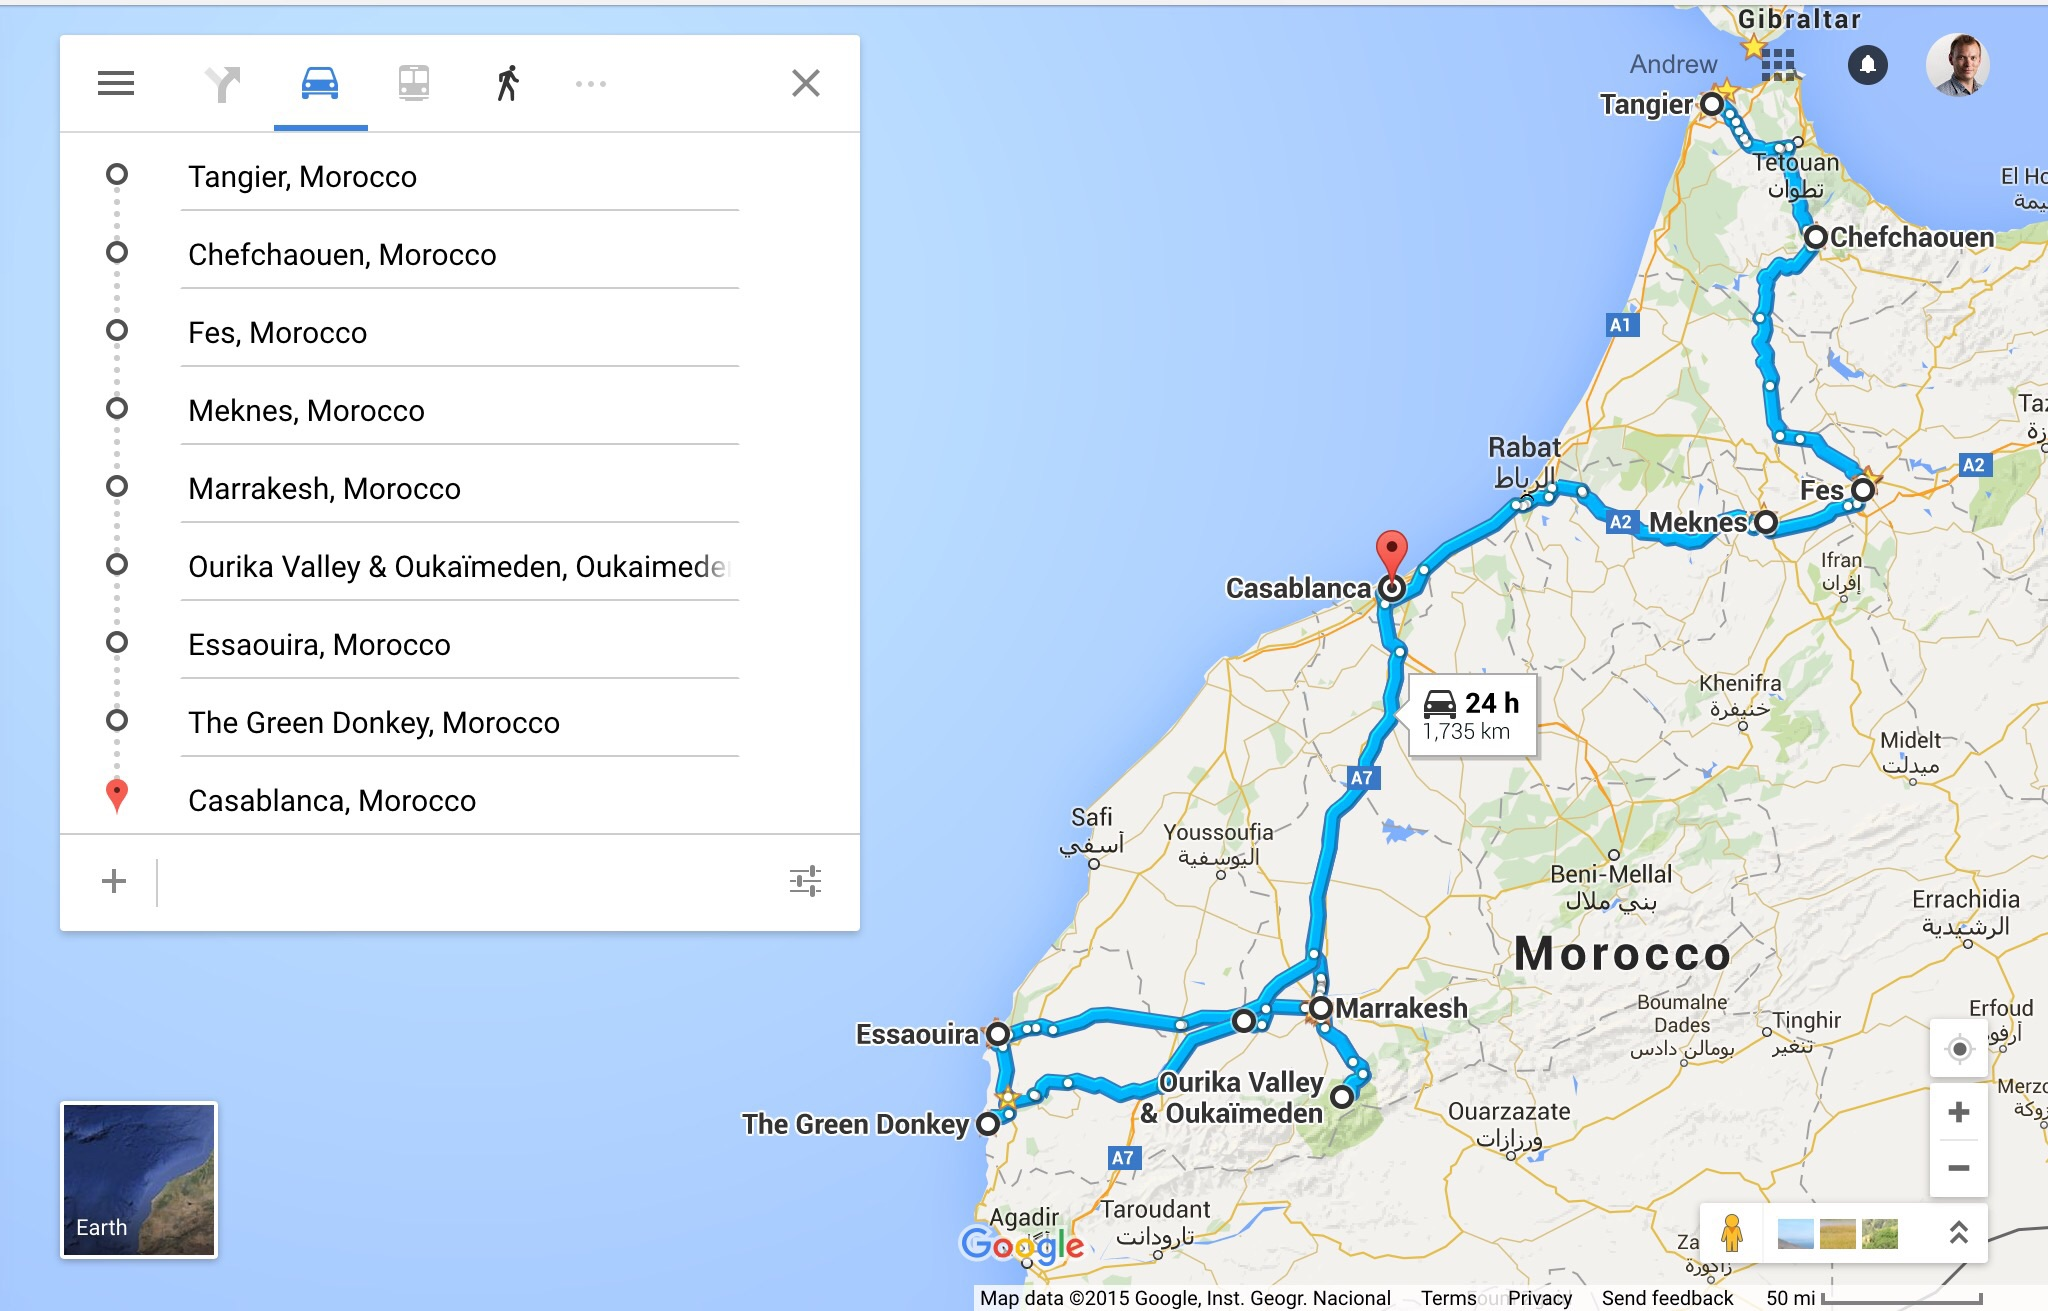 Our itinerary: Tangier > Chefchaouen > Fes > Marrakech > Essaouira > L'Ane Vert hostel (The Green Donkey) > Casablanca. We took a daytrip from Fes to Meknes, and from Marrekech to the Ourika valley and High Atlas Mountains. This map displays driving directions, though we leveraged cars, taxis, buses, and trains.